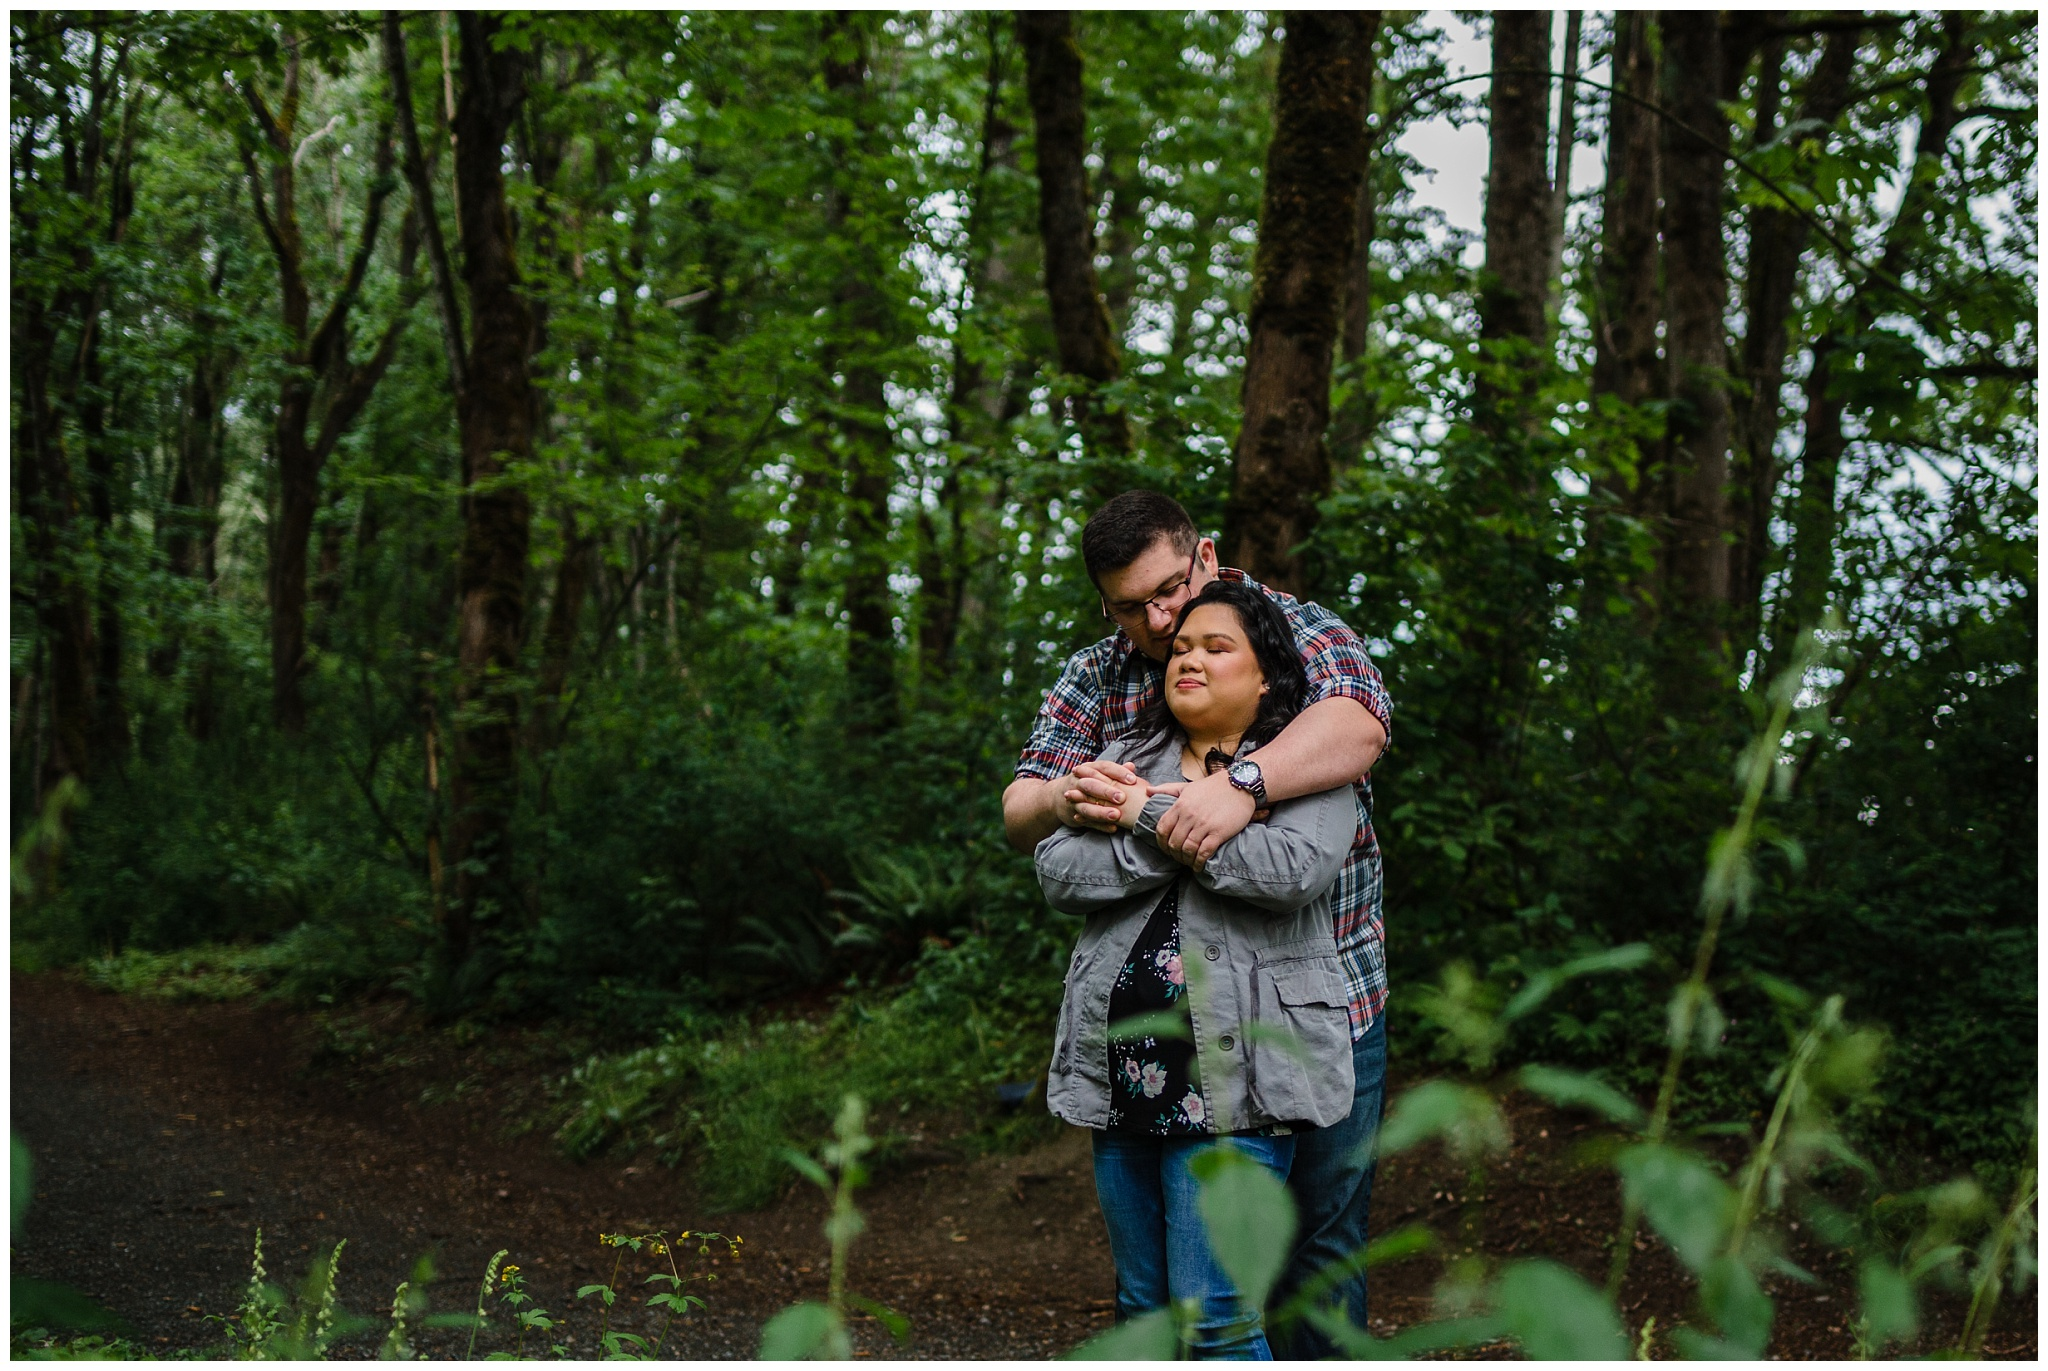 McKay Creek Park Abbotsford Spring Engagement Photos Happy Forest Trees Green Candid Fun Couple Photos_0015.jpg